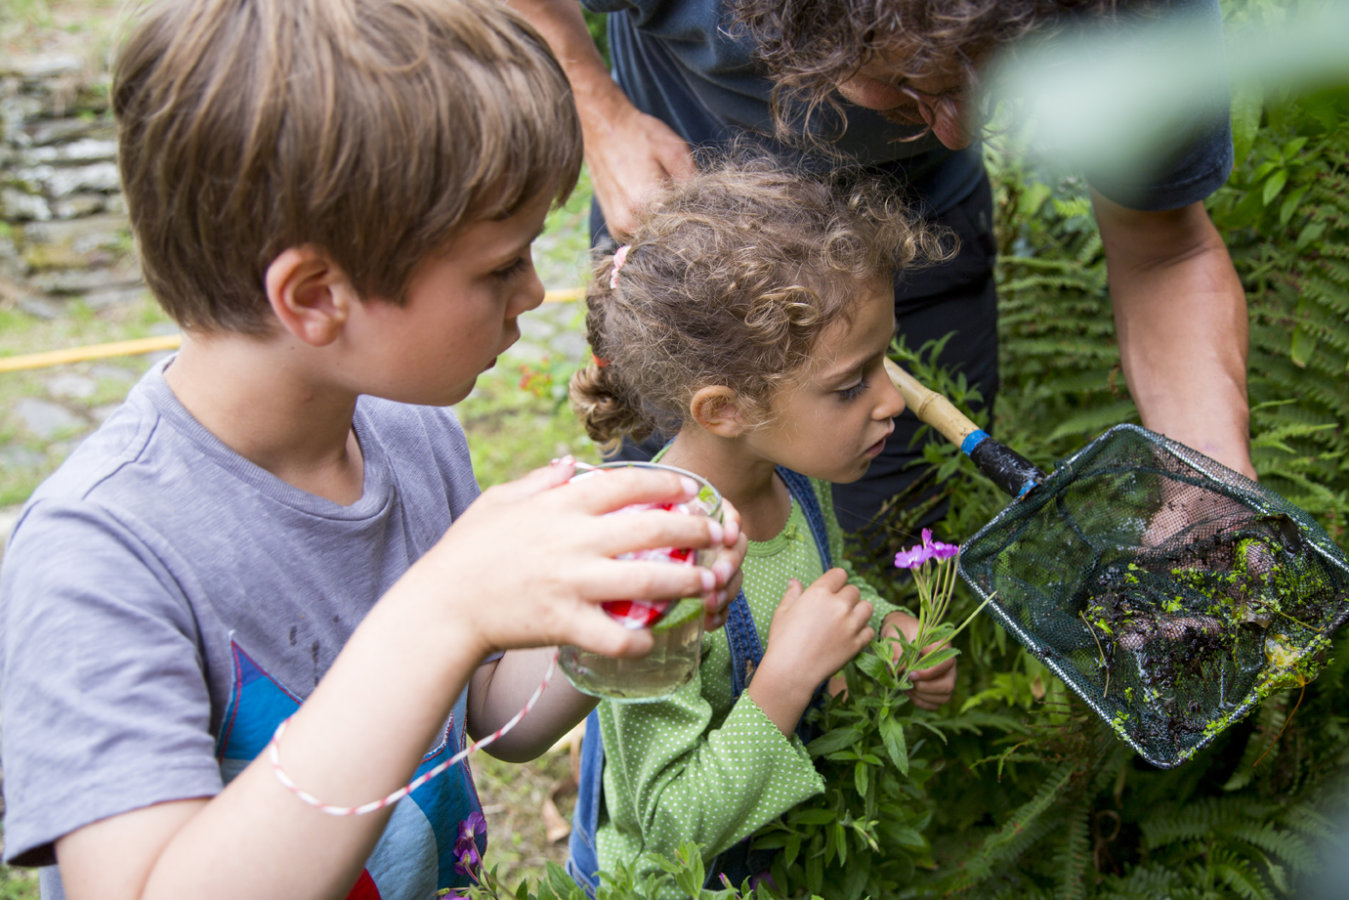 Higher Newham pond dipping image with children